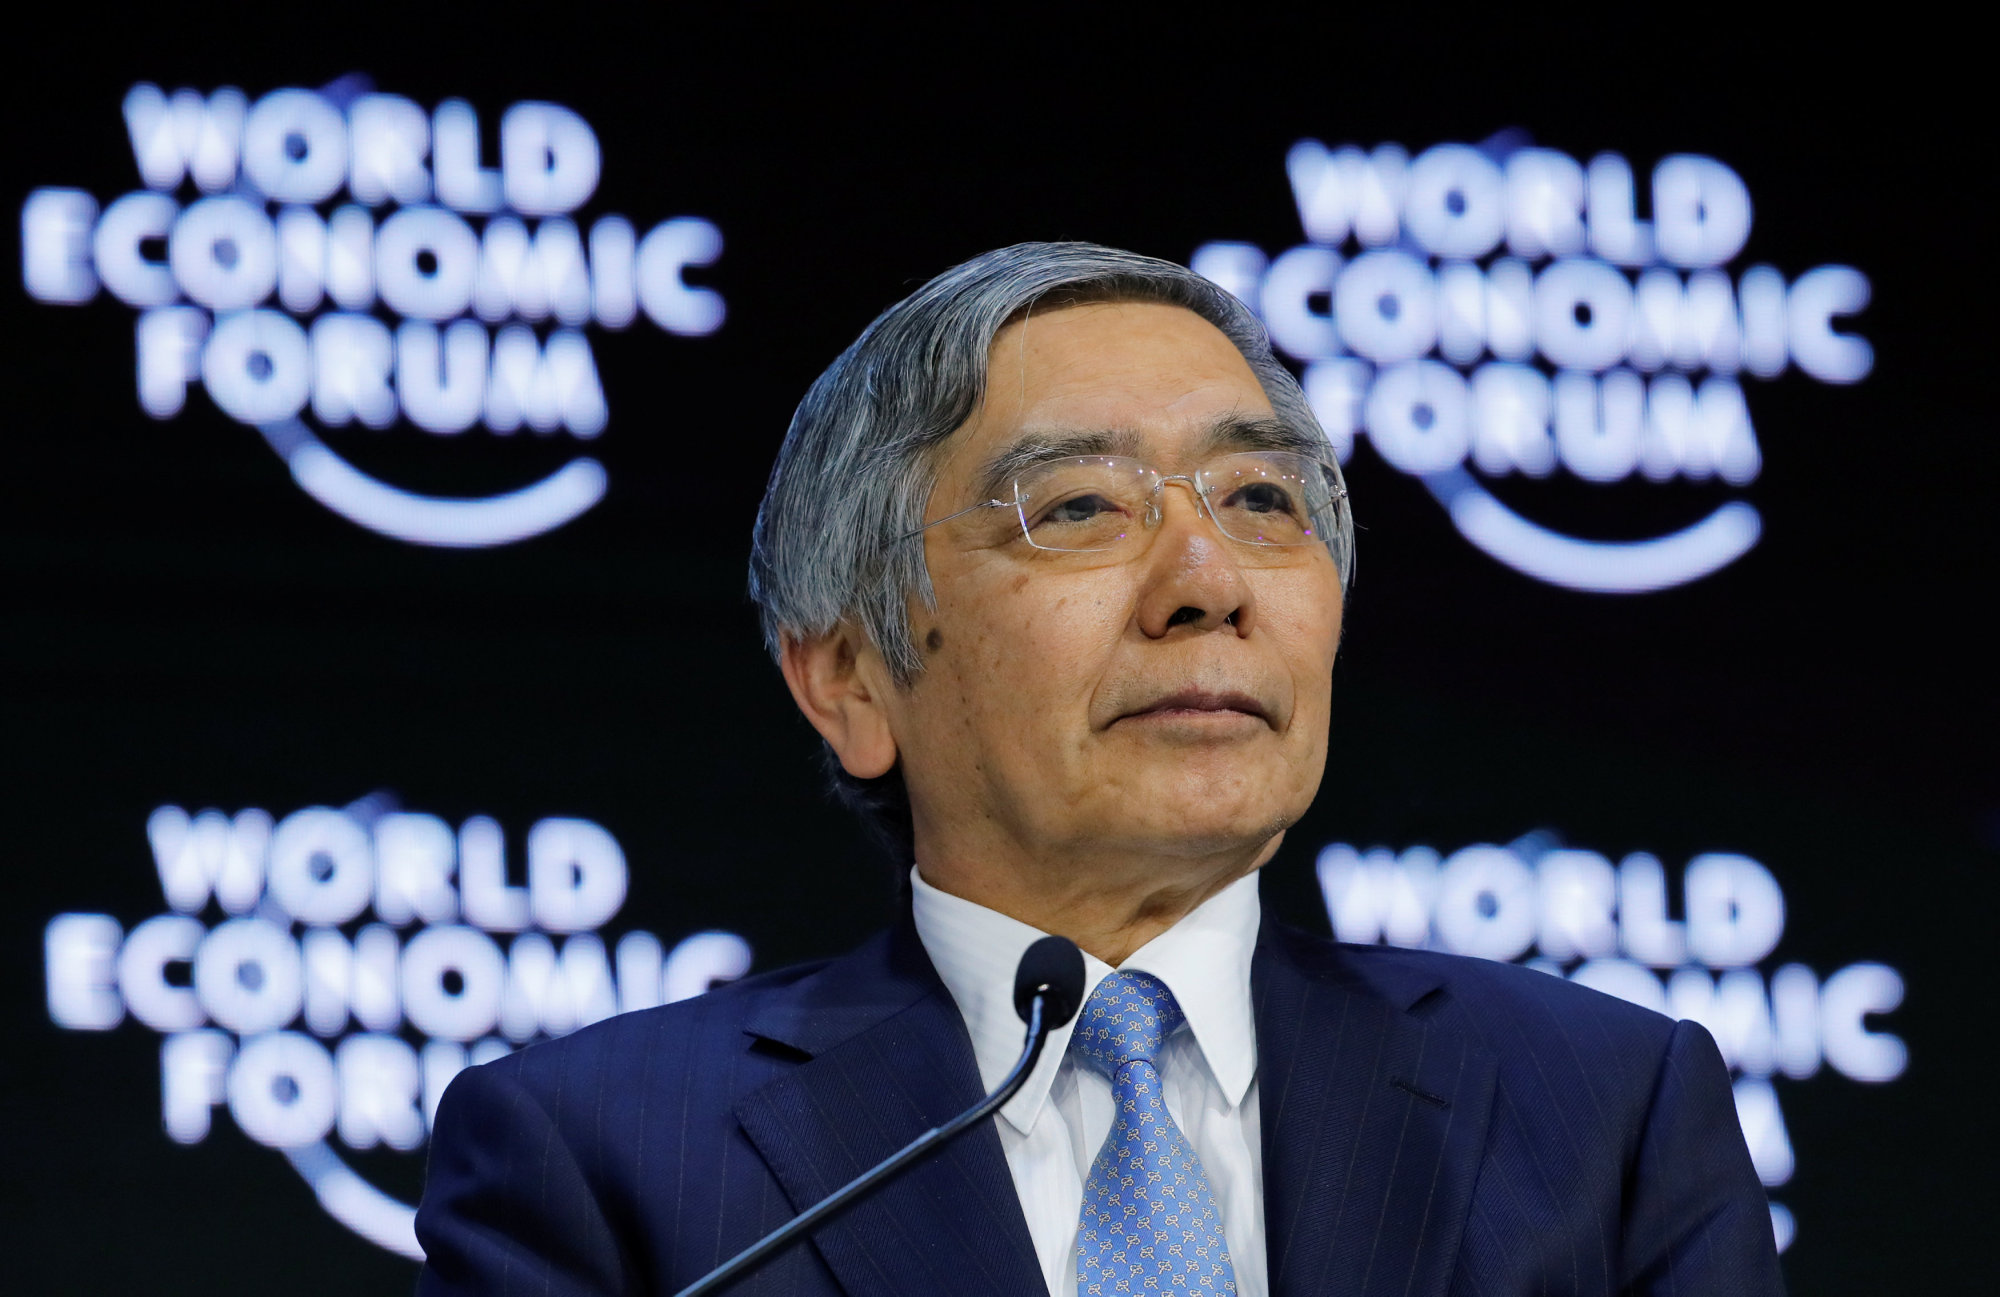 Bank of Japan Gov. Haruhiko Kuroda looks on as he attends the World Economic Forum's annual meeting in Davos, Switzerland, on Friday. | REUTERS